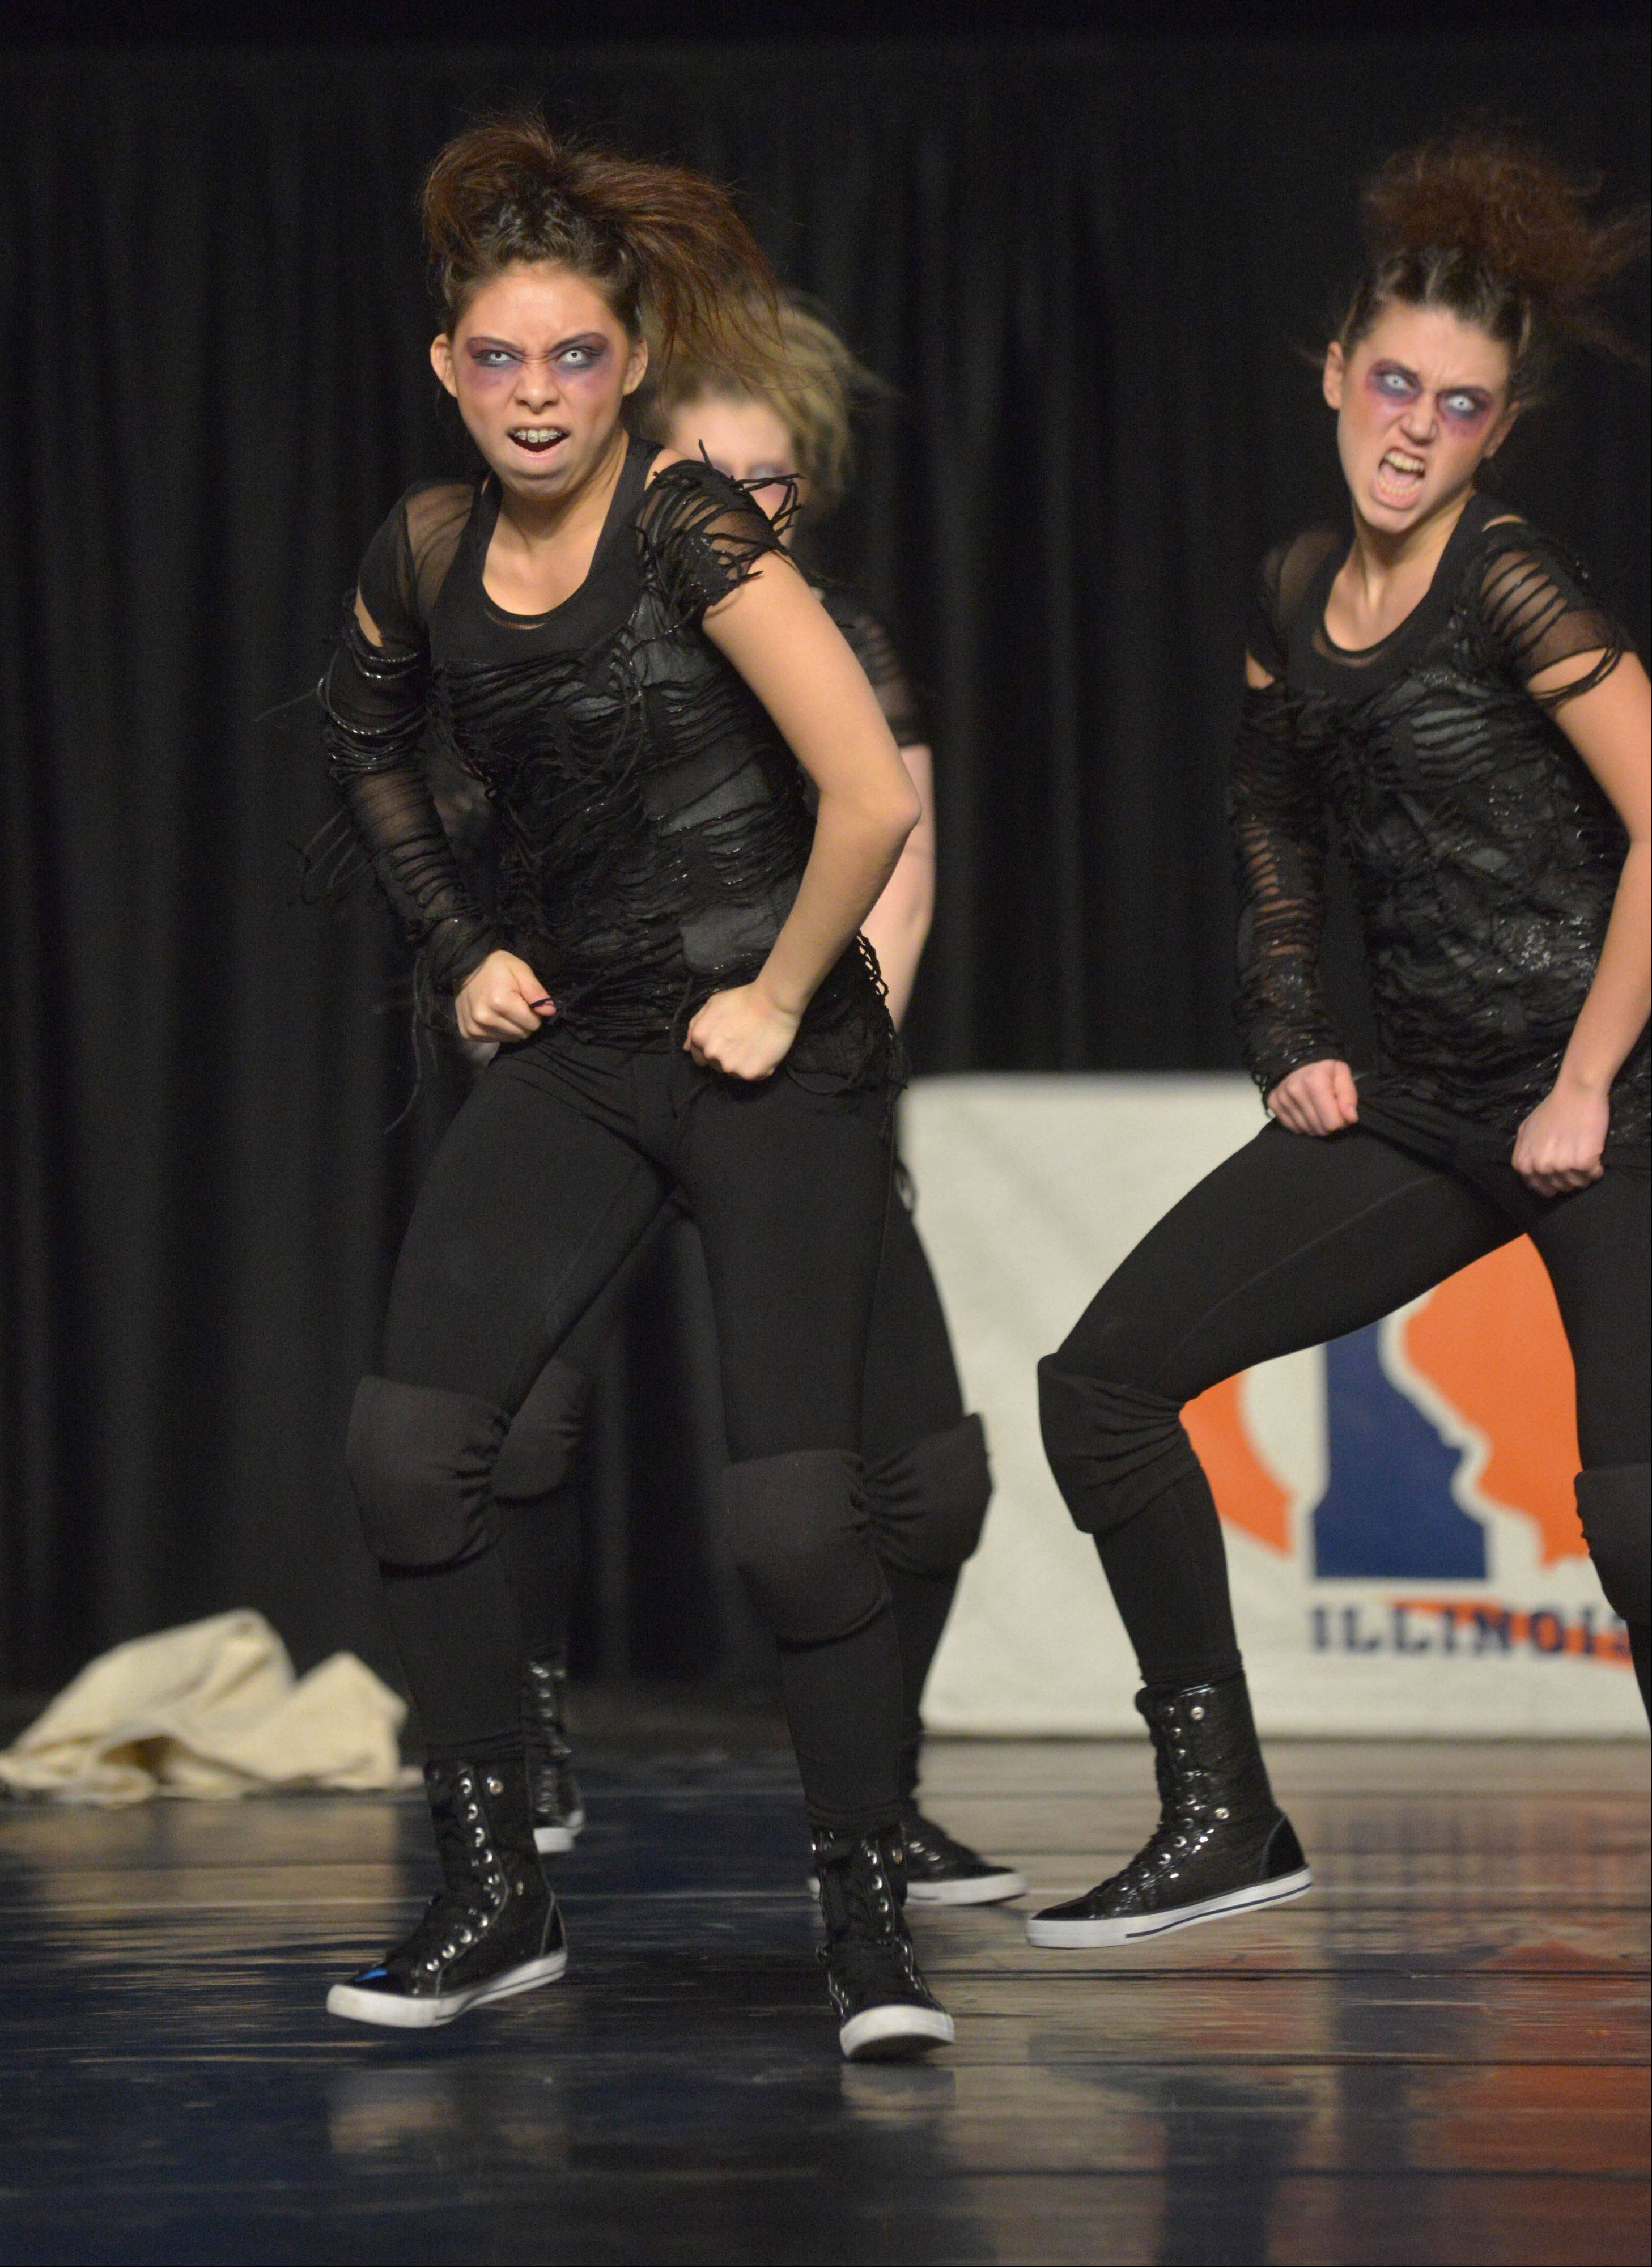 Fenton High School took part in the IHSA Dance State Final at U.S. Cellular Coliseum in Bloomington Saturday. 90 teams vied for state champion at this event.